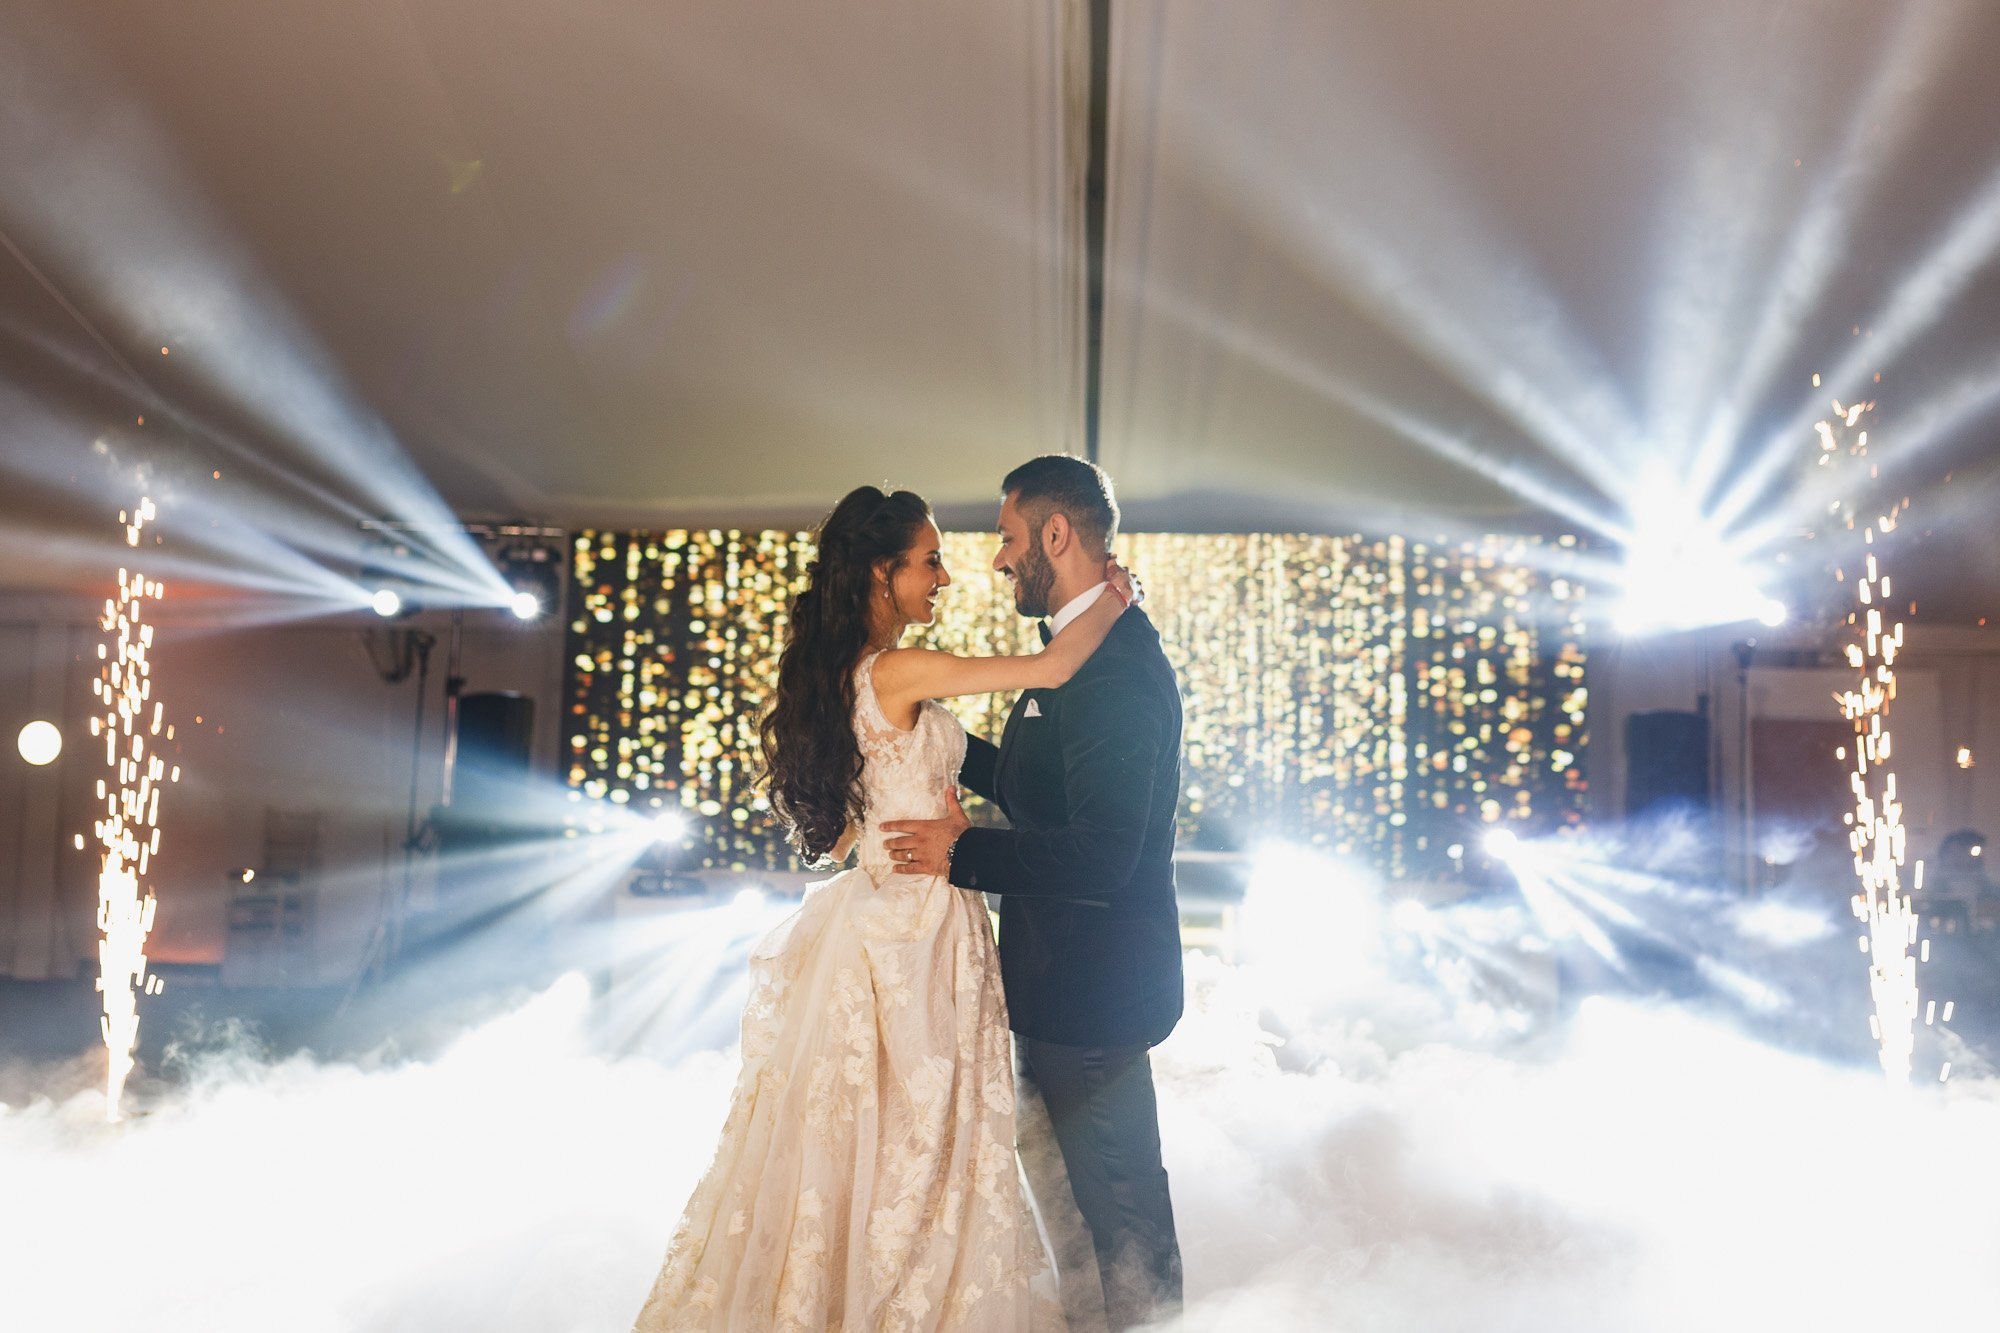 Heythrop Park Hotel, Oxfordshire, first dance, dry ice